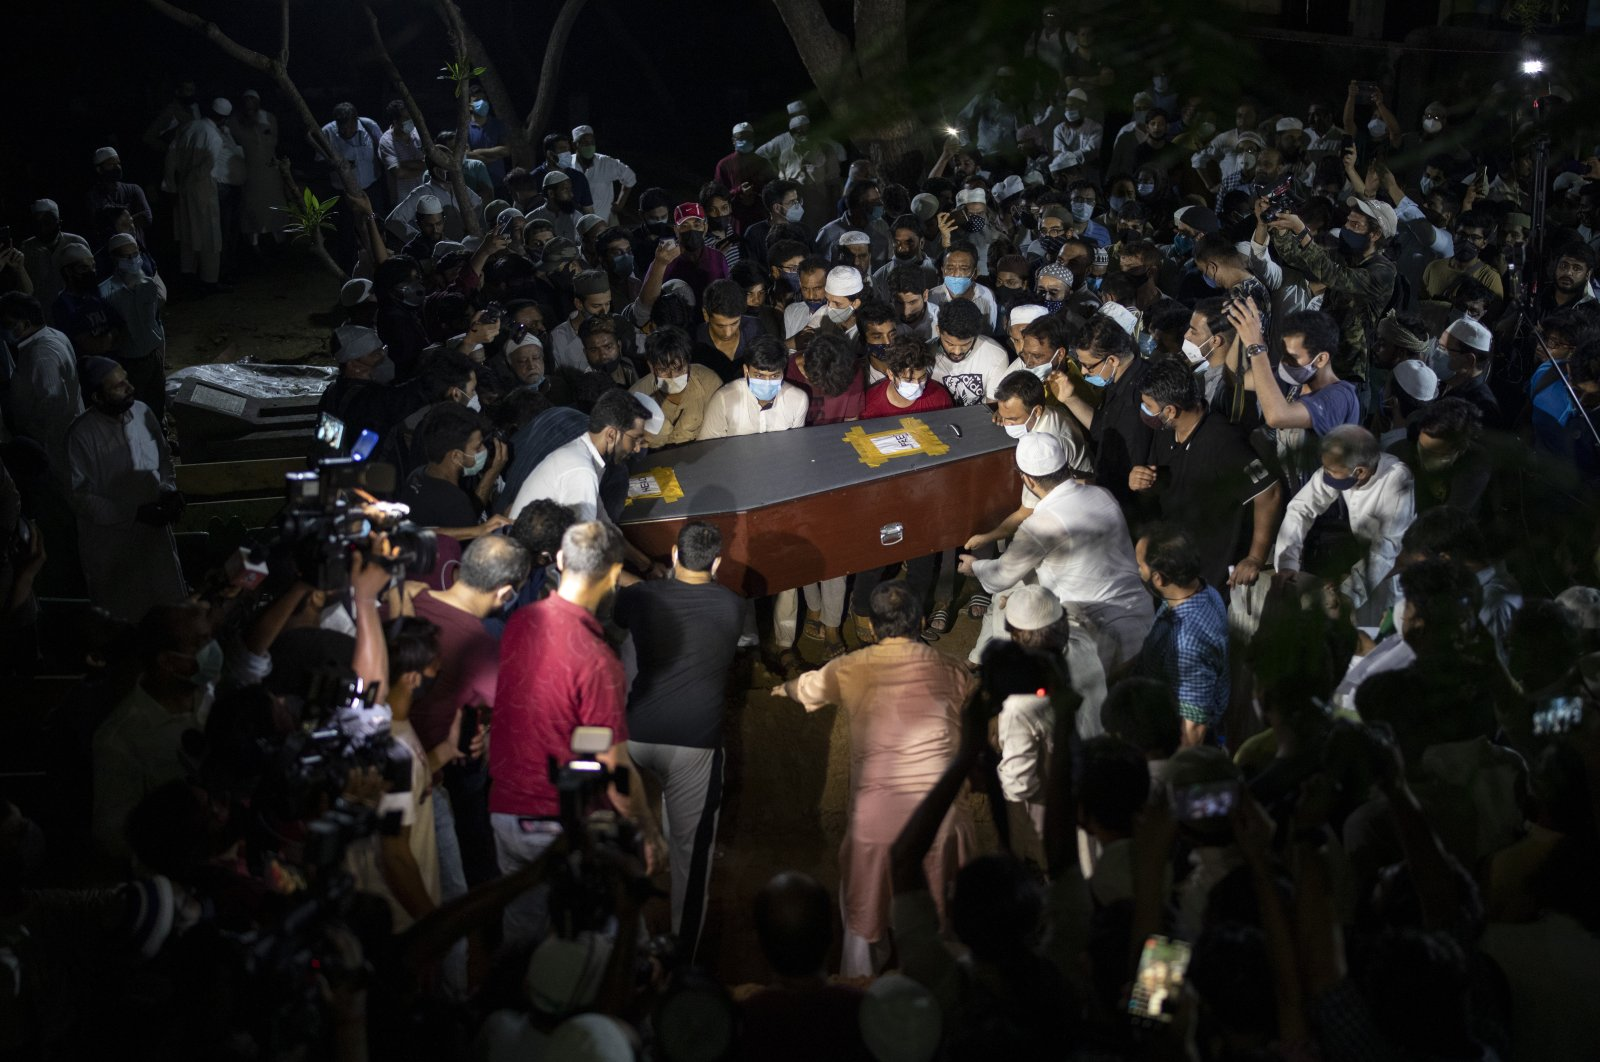 People carry the coffin of Reuters photographer Danish Siddiqui during his funeral in New Delhi, India, July 18, 2021. (AP Photo)